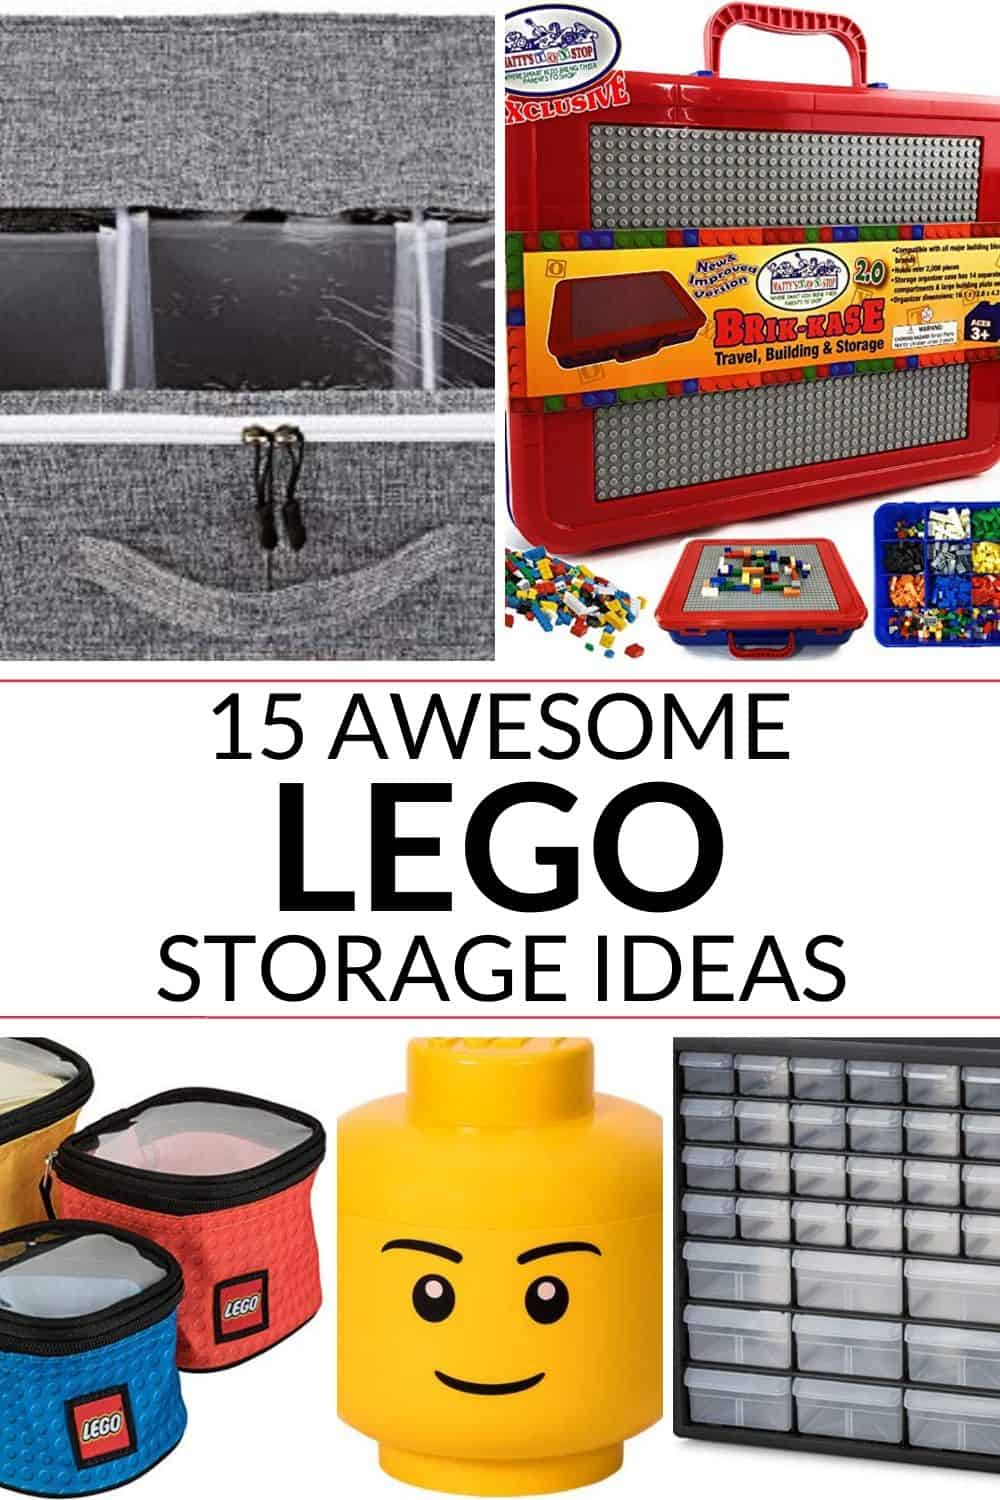 A collection of 15 amazing lego storage ideas.